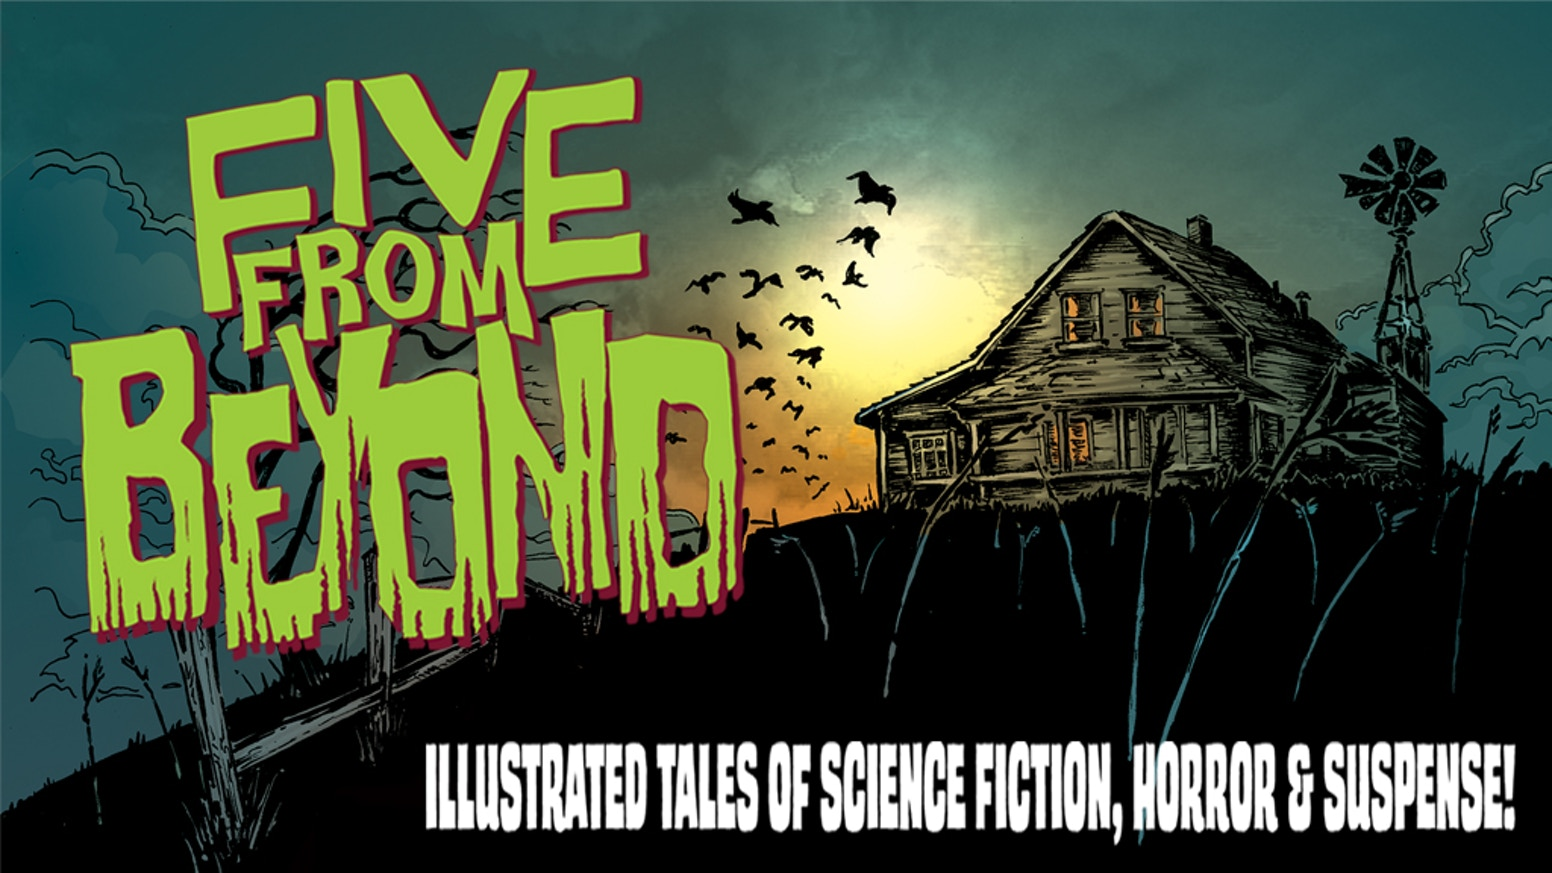 A 5 story, 48 page comic inspired by classic pulp magazines like Creepy, Eerie and Tales From the Crypt!